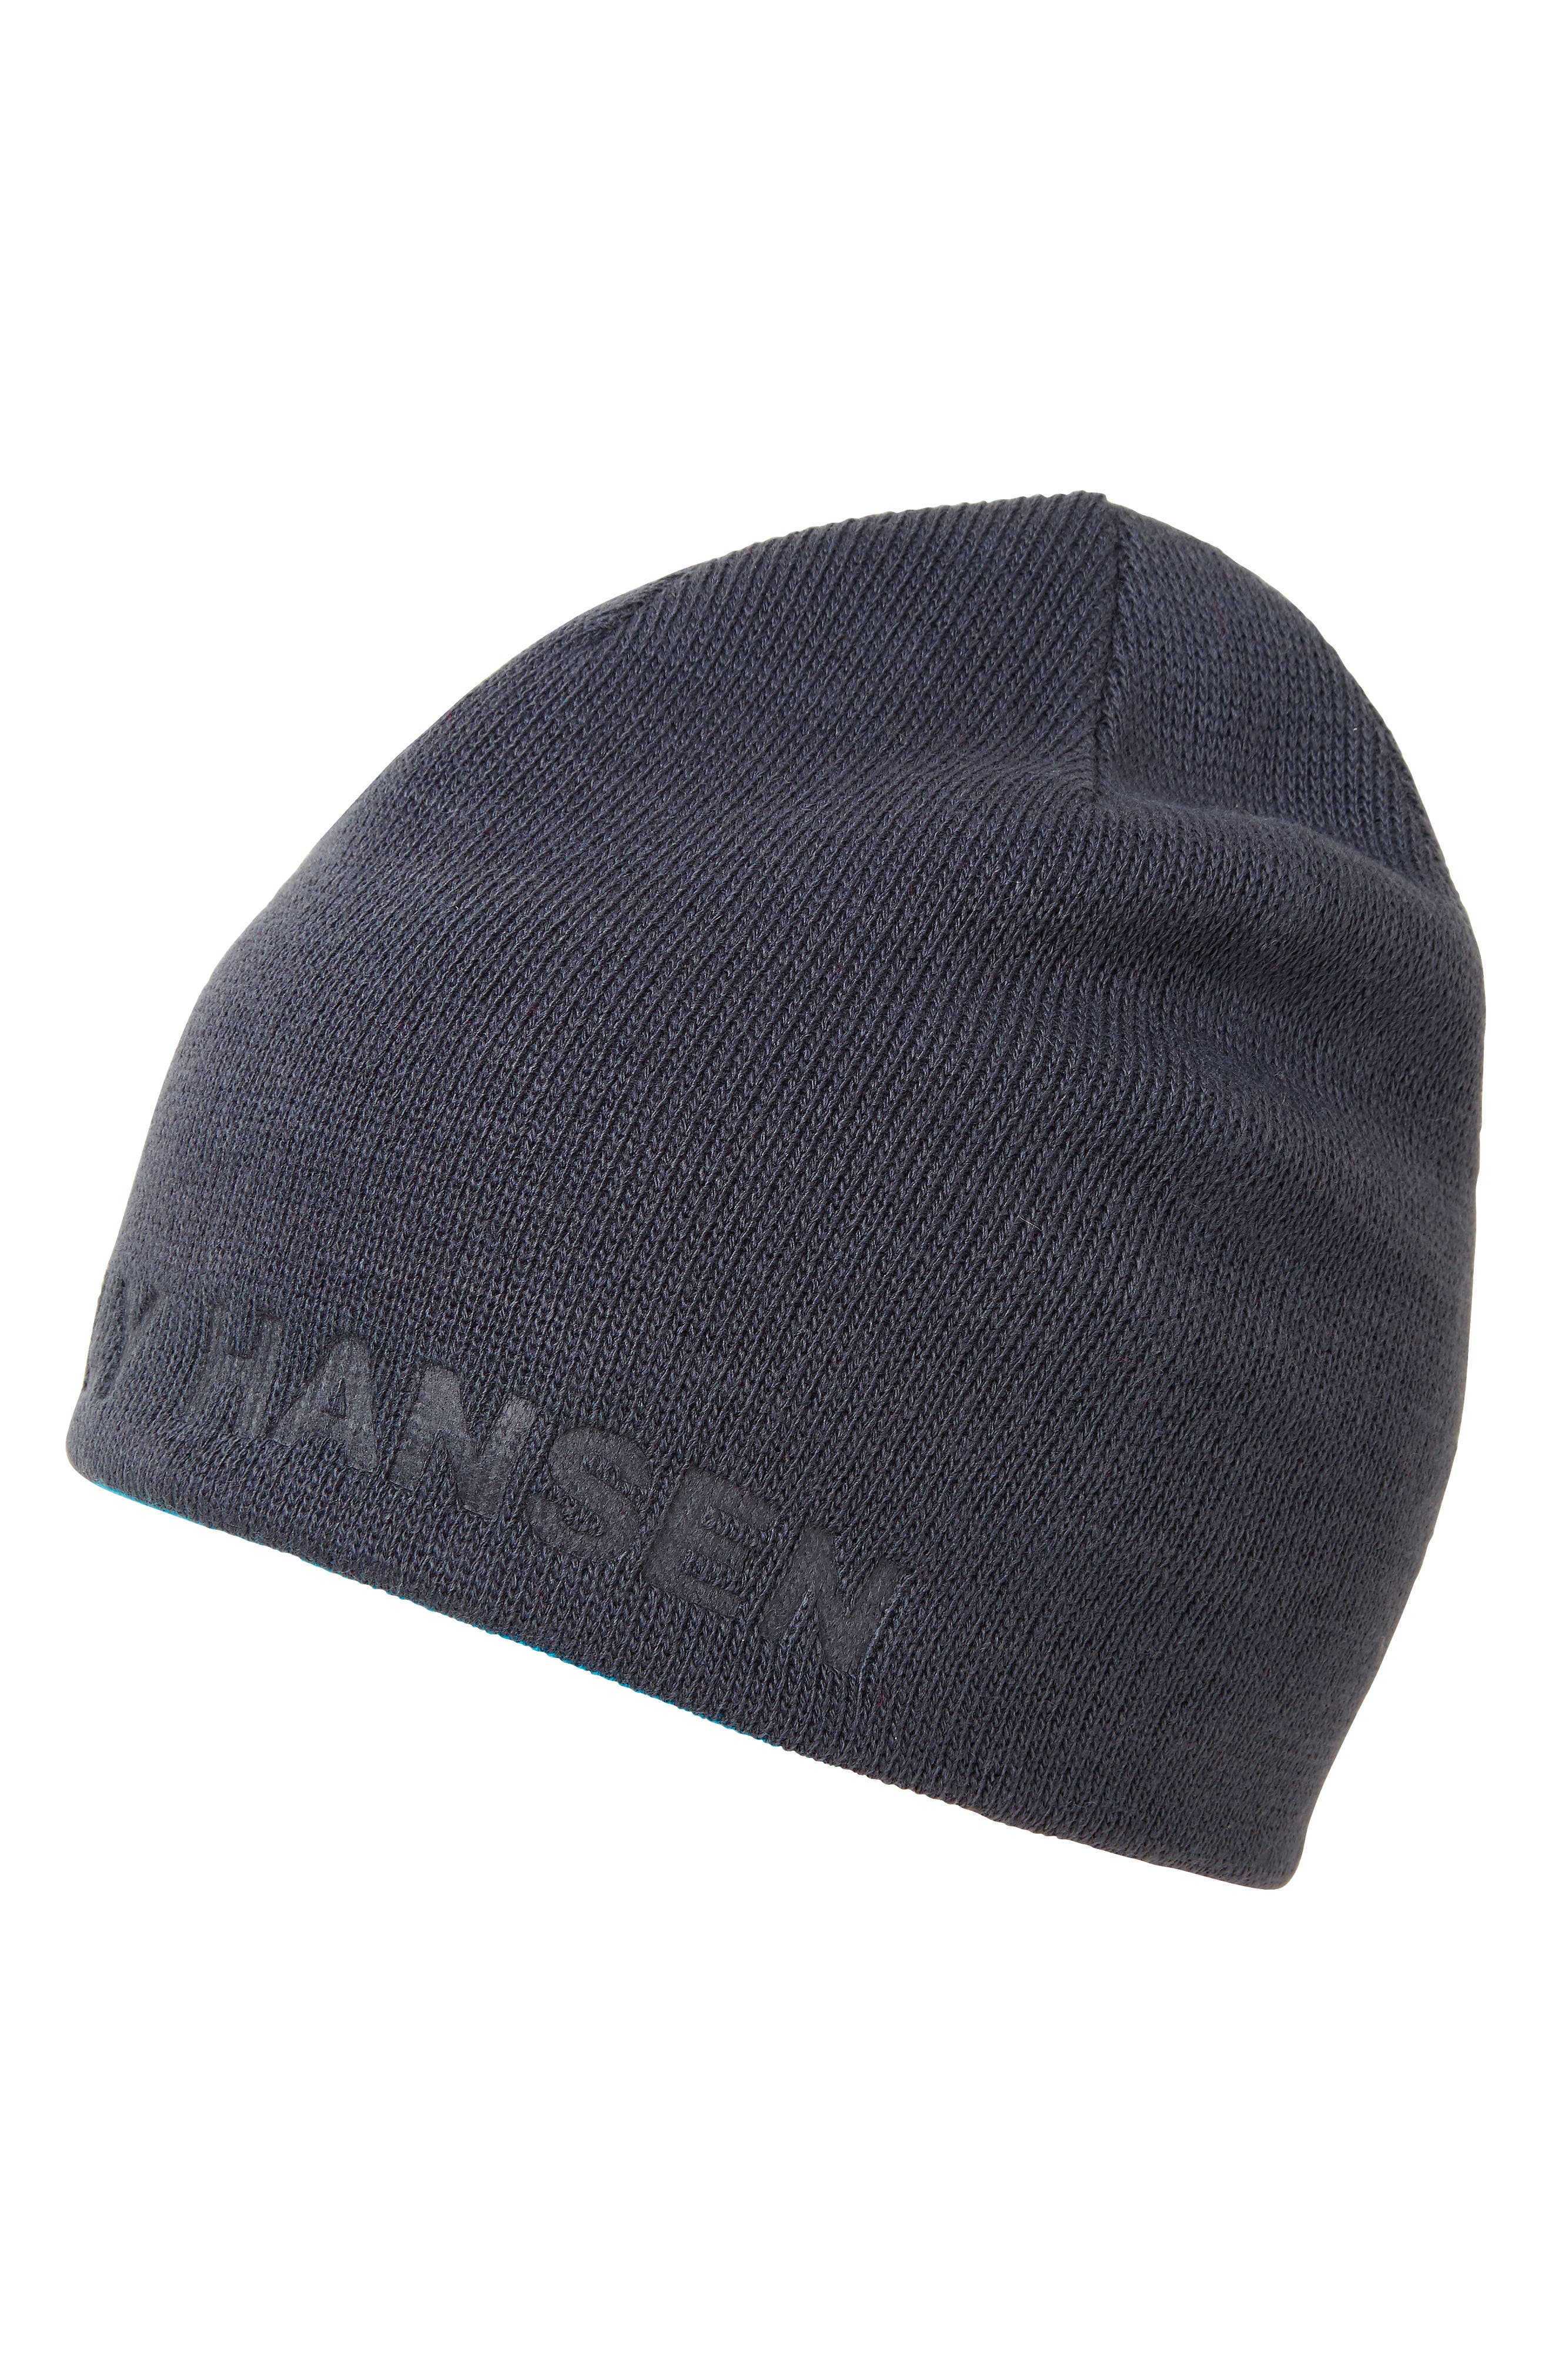 Outline Reversible Beanie - Grey in Graphite Blue/ Olympian Blue